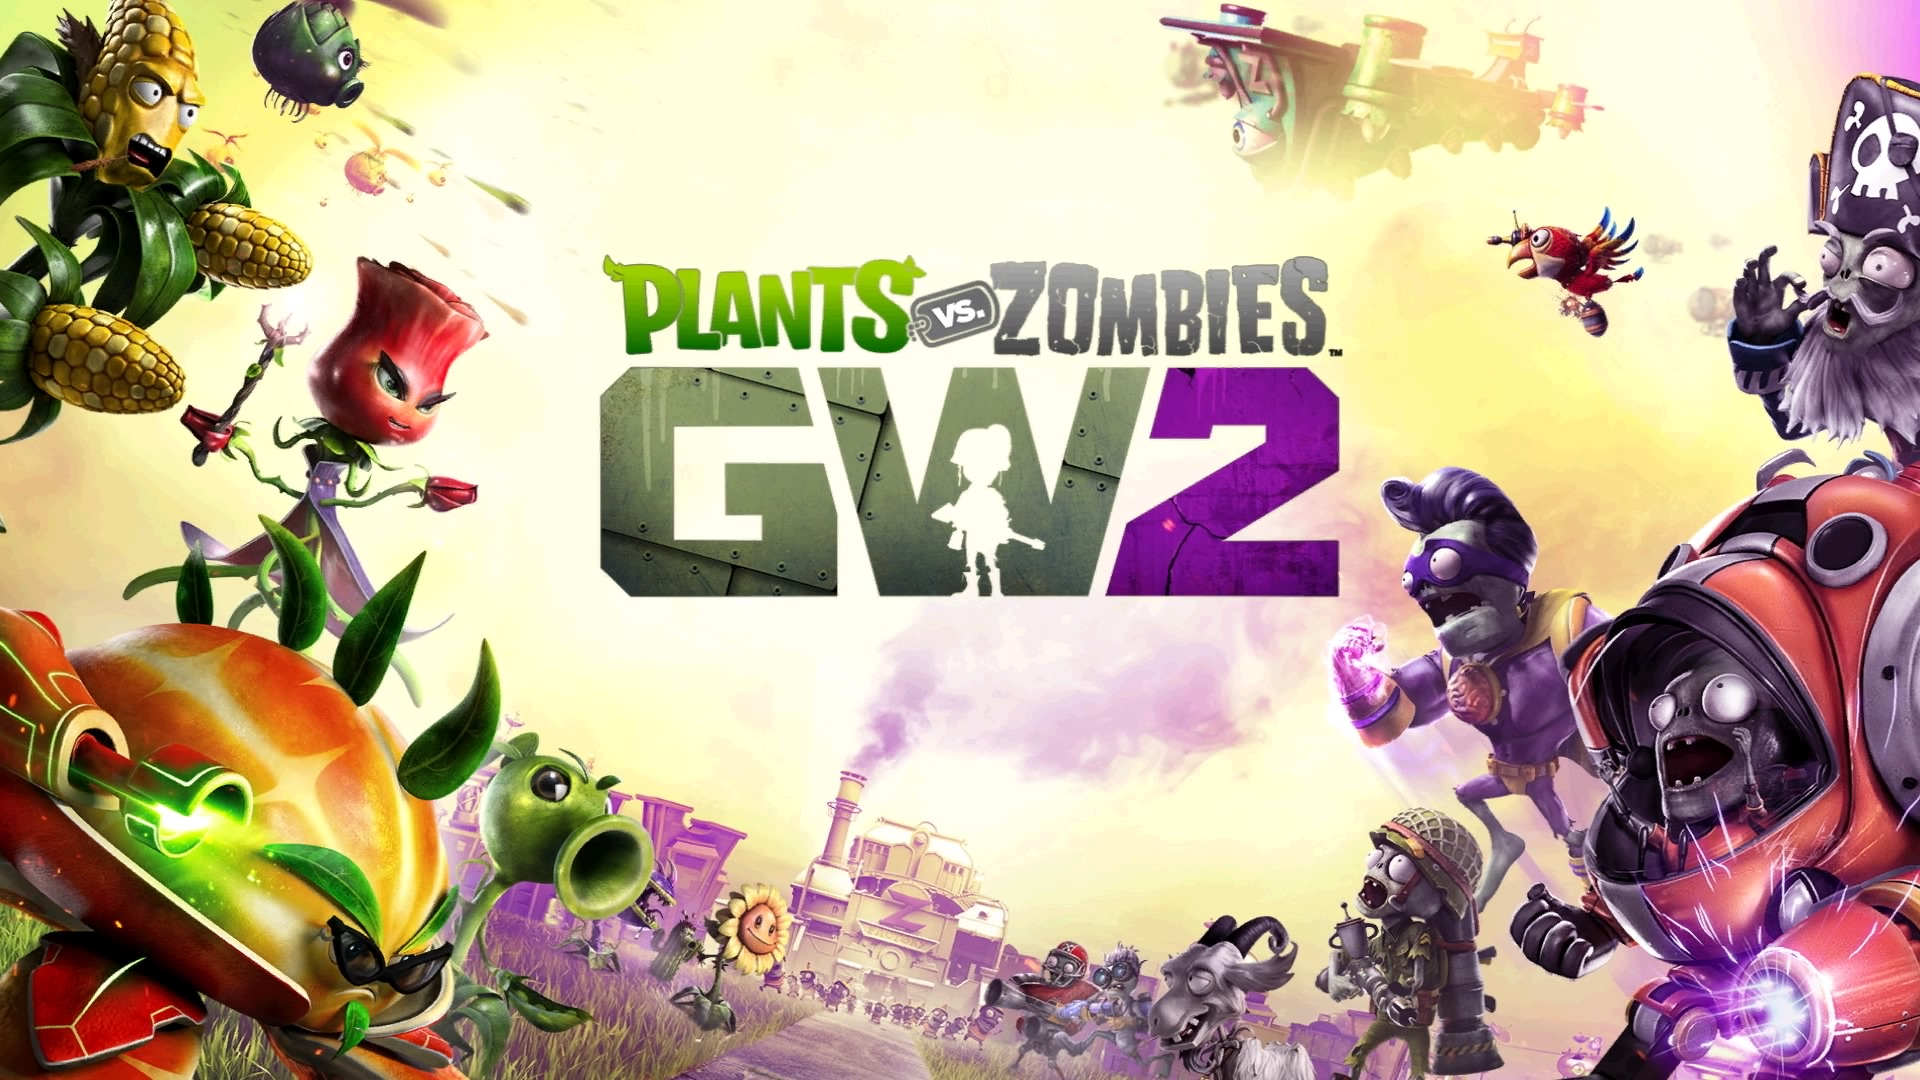 Plants vs. Zombies: Garden Warfare 2 telecharger gratuit de PC et Torrent